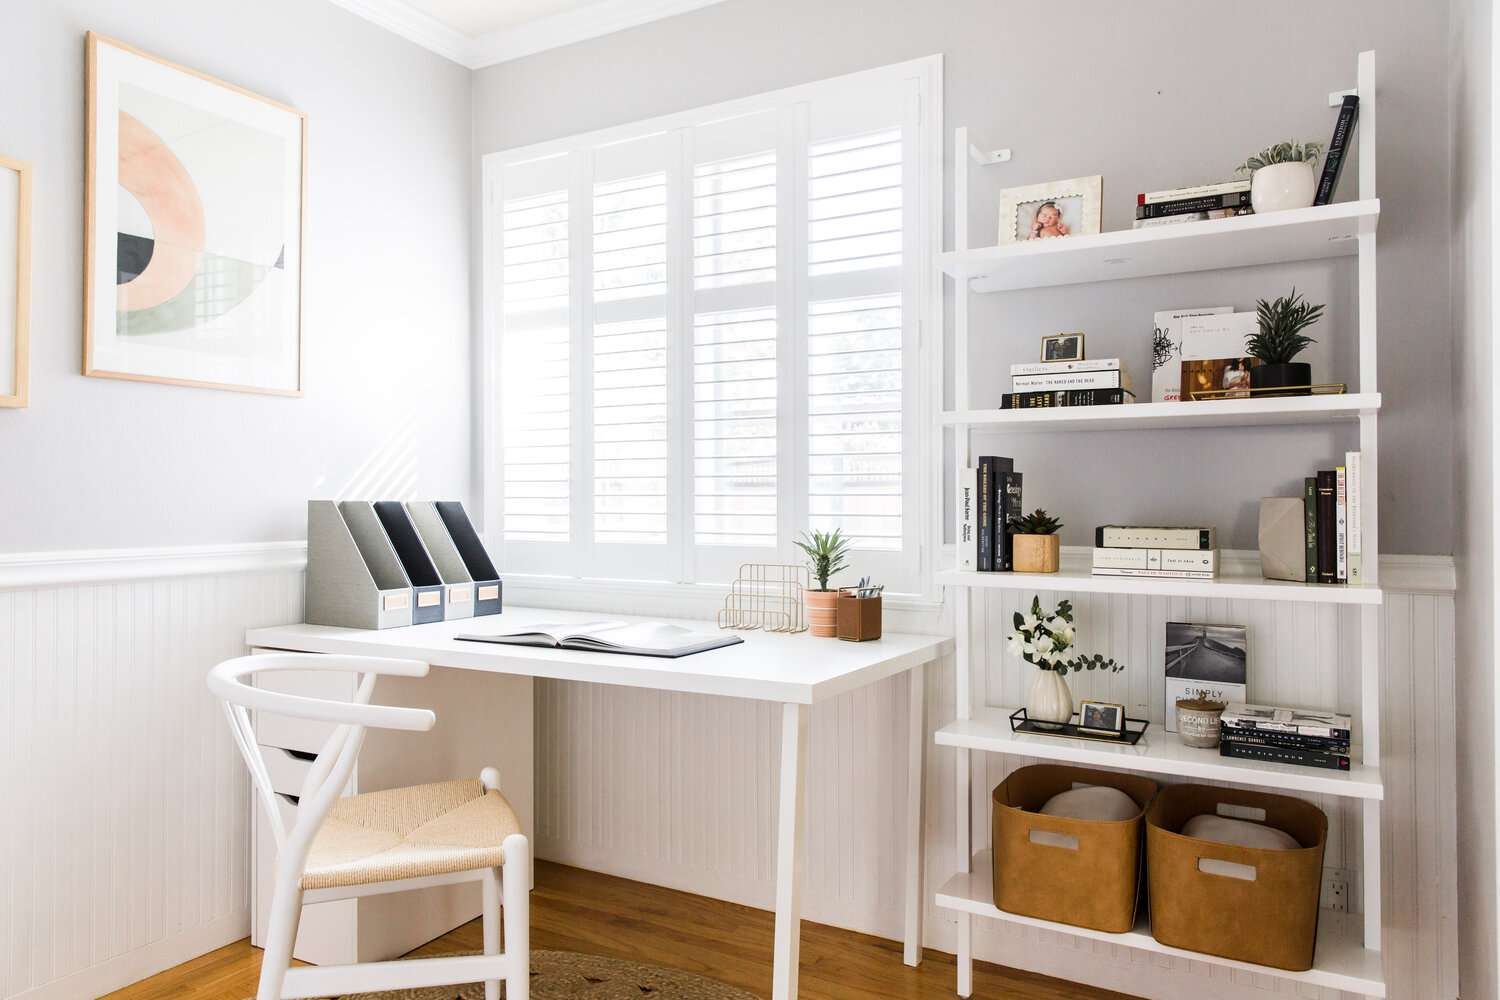 modern room with white table desk set up in the corner